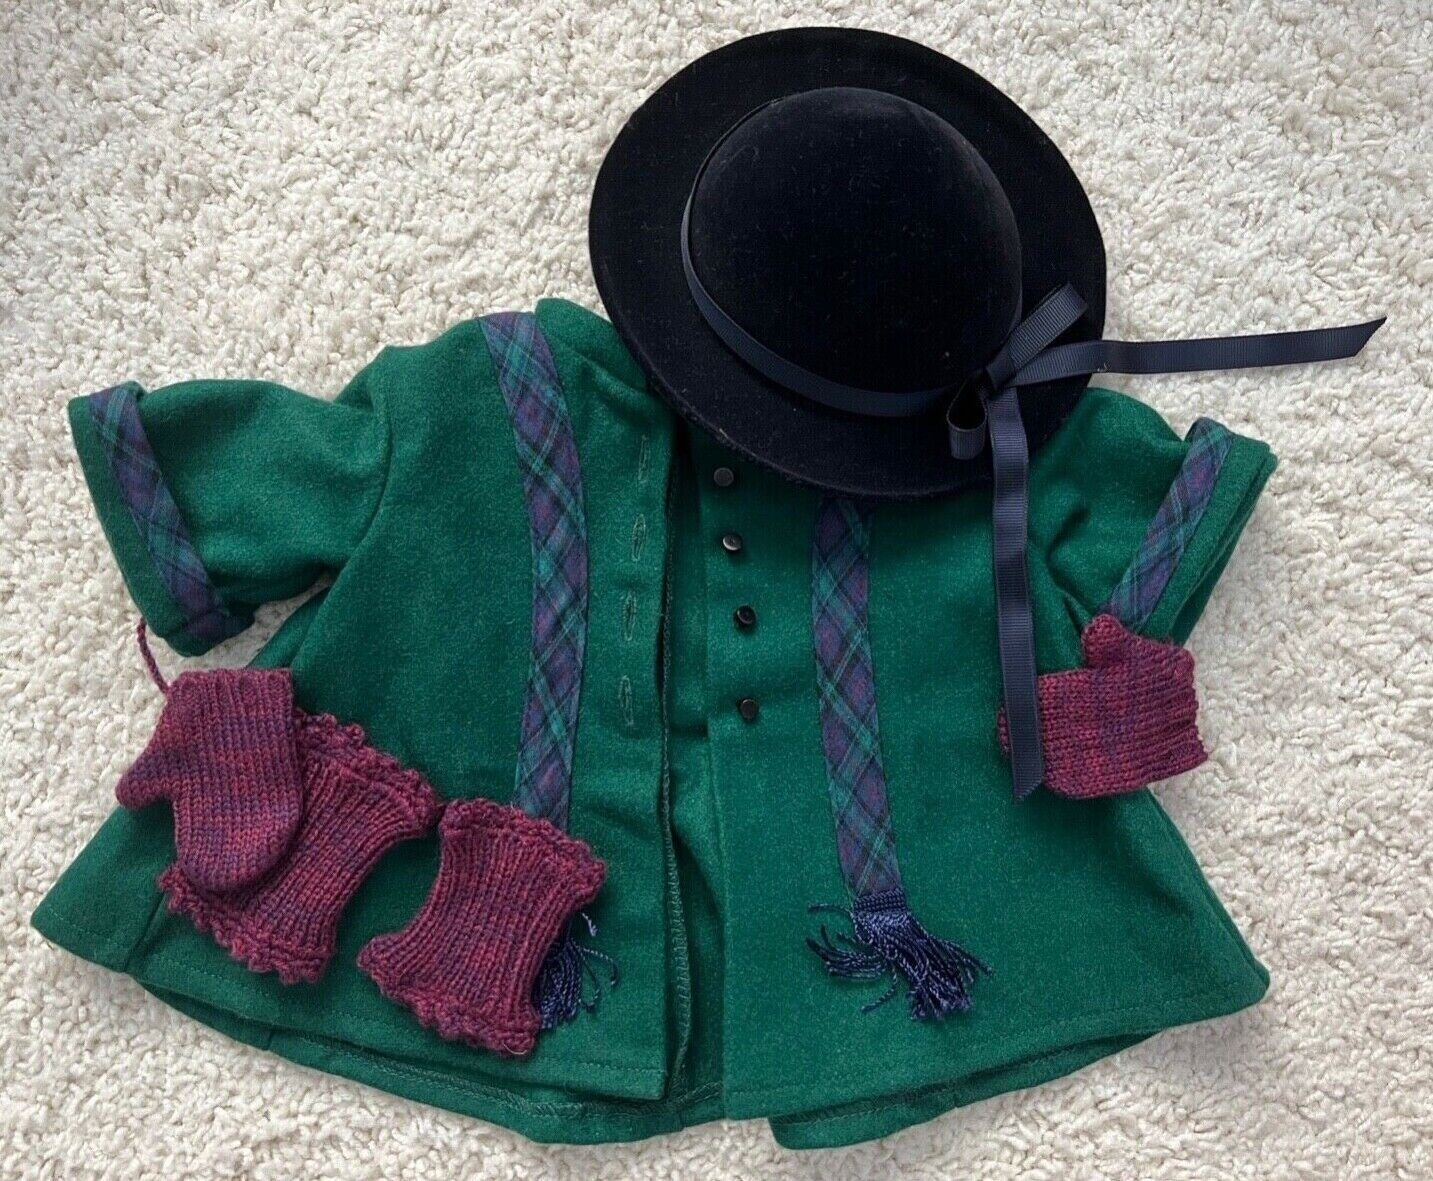 American Girl Doll Addy Winter Coat And Derby, Mittens, Knee Warmers NIB Retired - $80.00